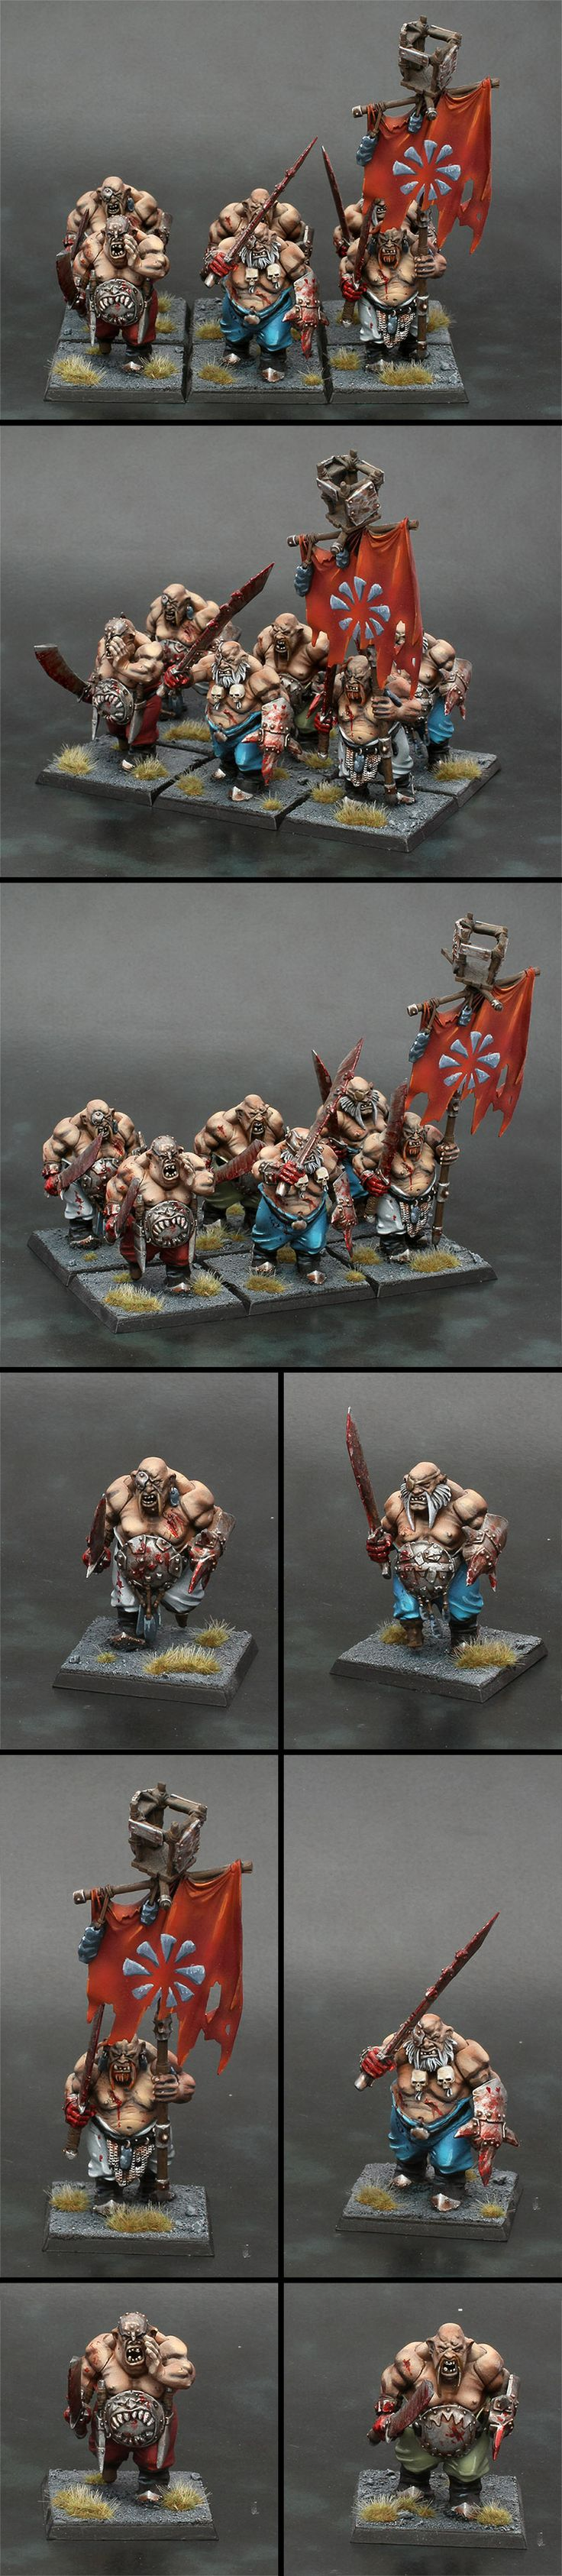 6 Ogre Kingdoms Bull Pirates